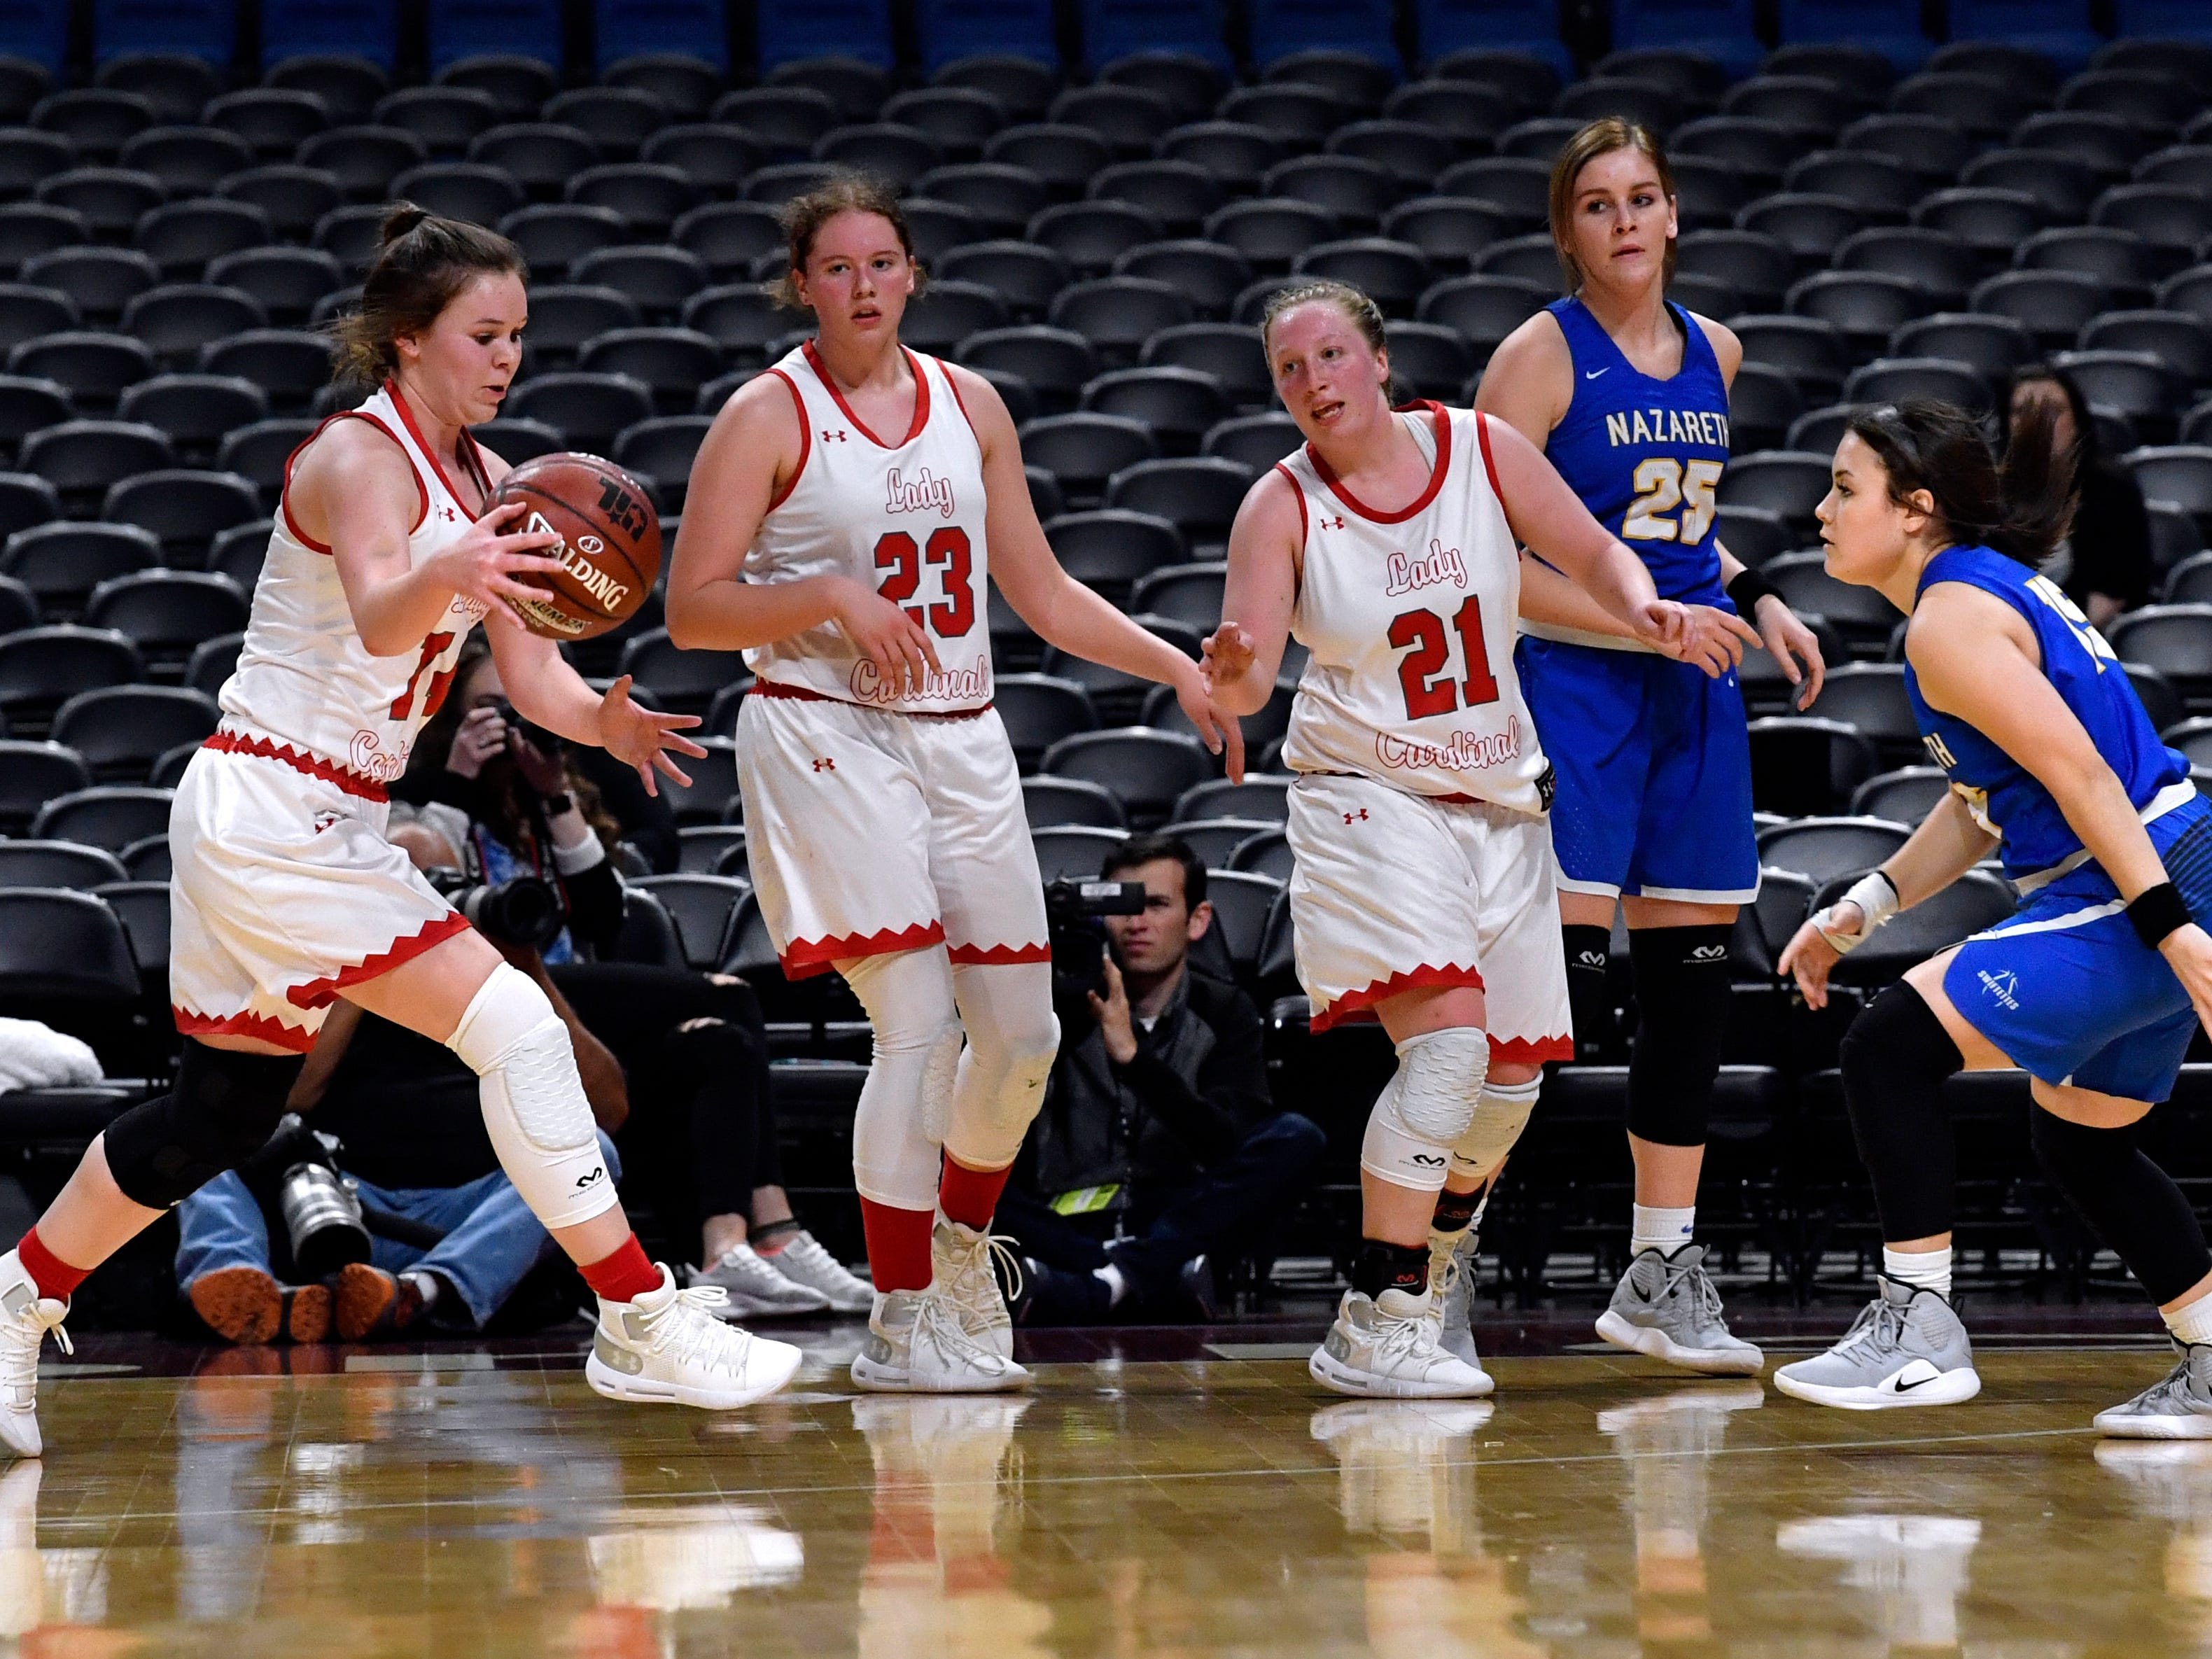 Hermleigh players Ciera Digby (left), Makia Gonzales, and Lillian Digby gain control of the ball against Nazareth during Thursday's UIL Class 1A girls state basketball semifinal at the Alamodome in San Antonio Feb. 28, 2019.